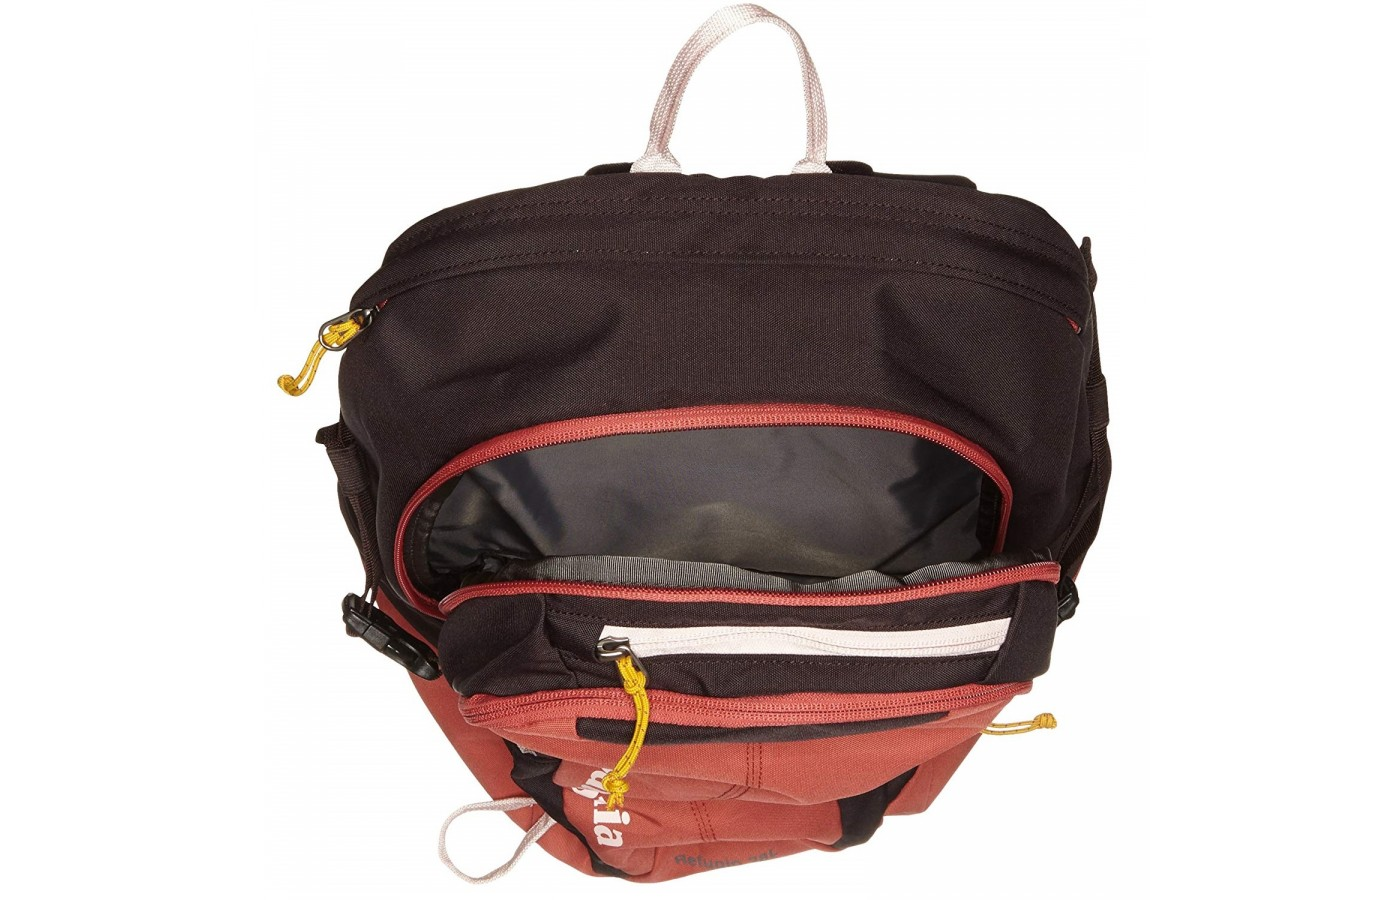 The Patagonia Refugio offers several organizational pockets for both organization and protection of your assets.